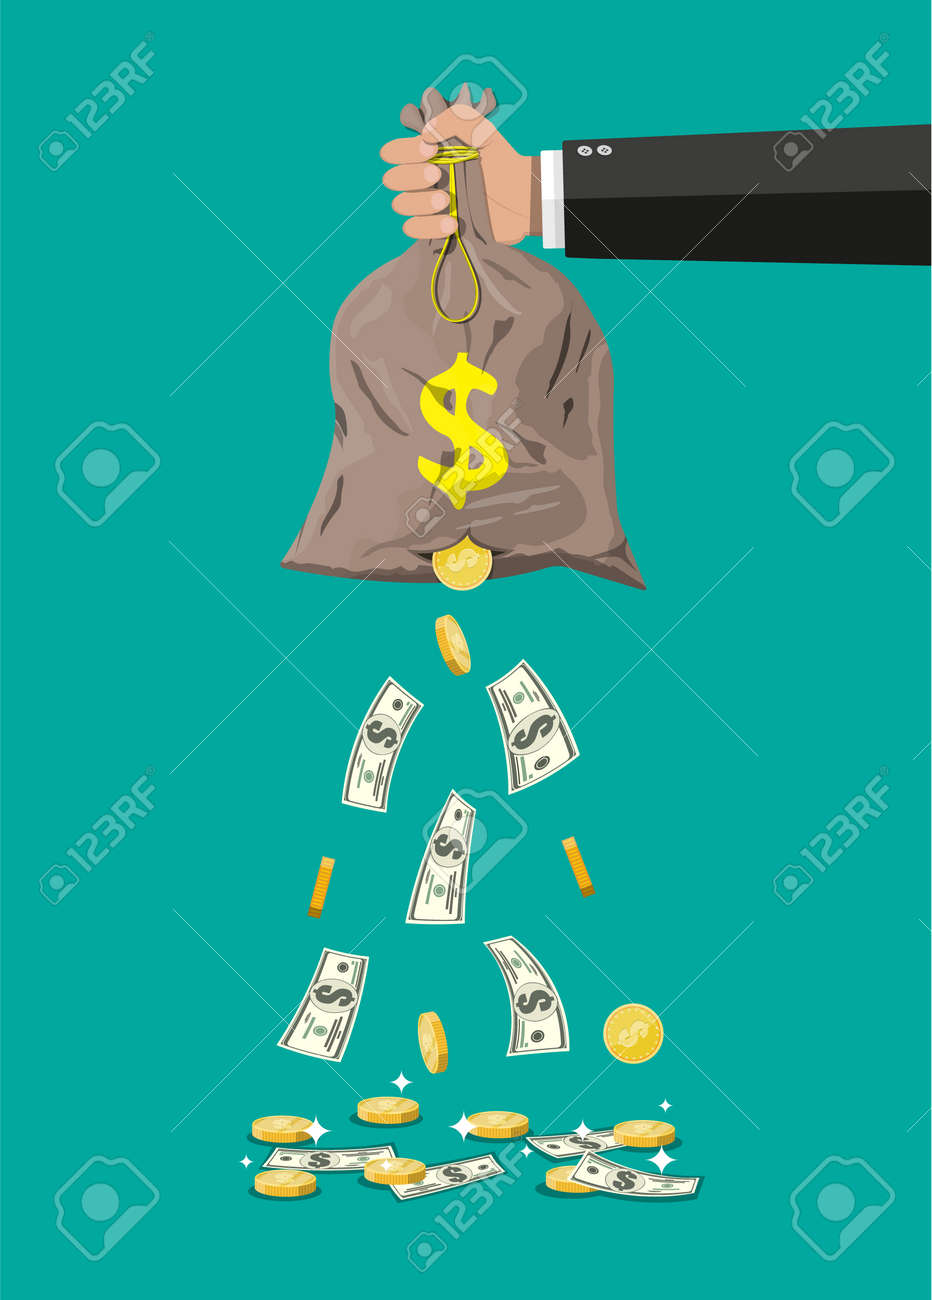 Money bag with hole in hand. Losing golden coins and dollar cash. Losing money and overspending. Vector illustration in flat style - 93447162